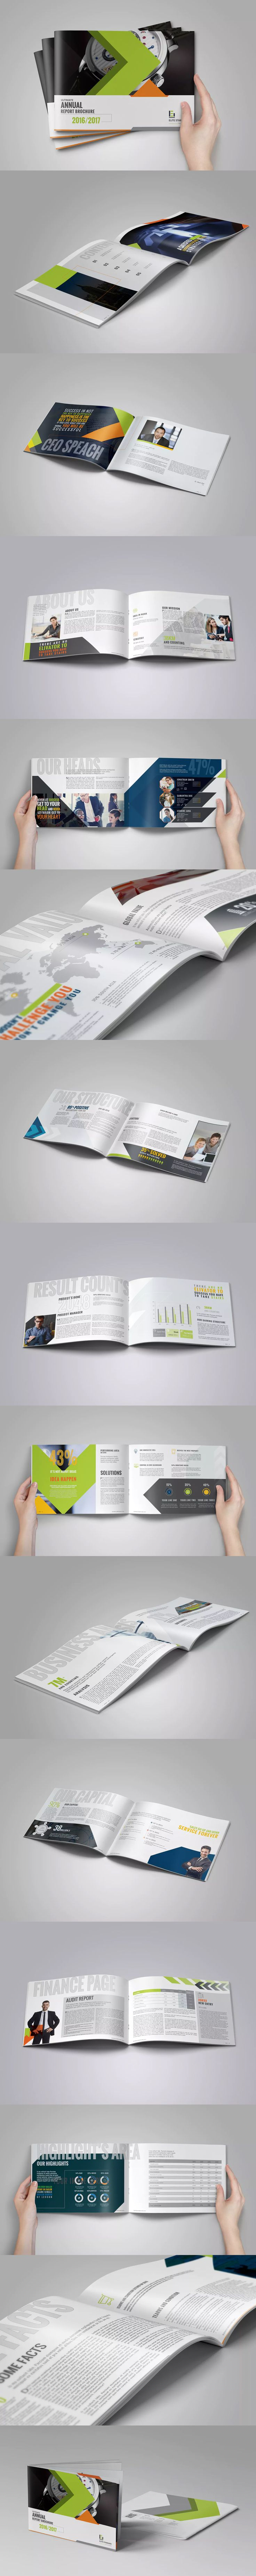 Landscape Annual Report Template InDesign INDD